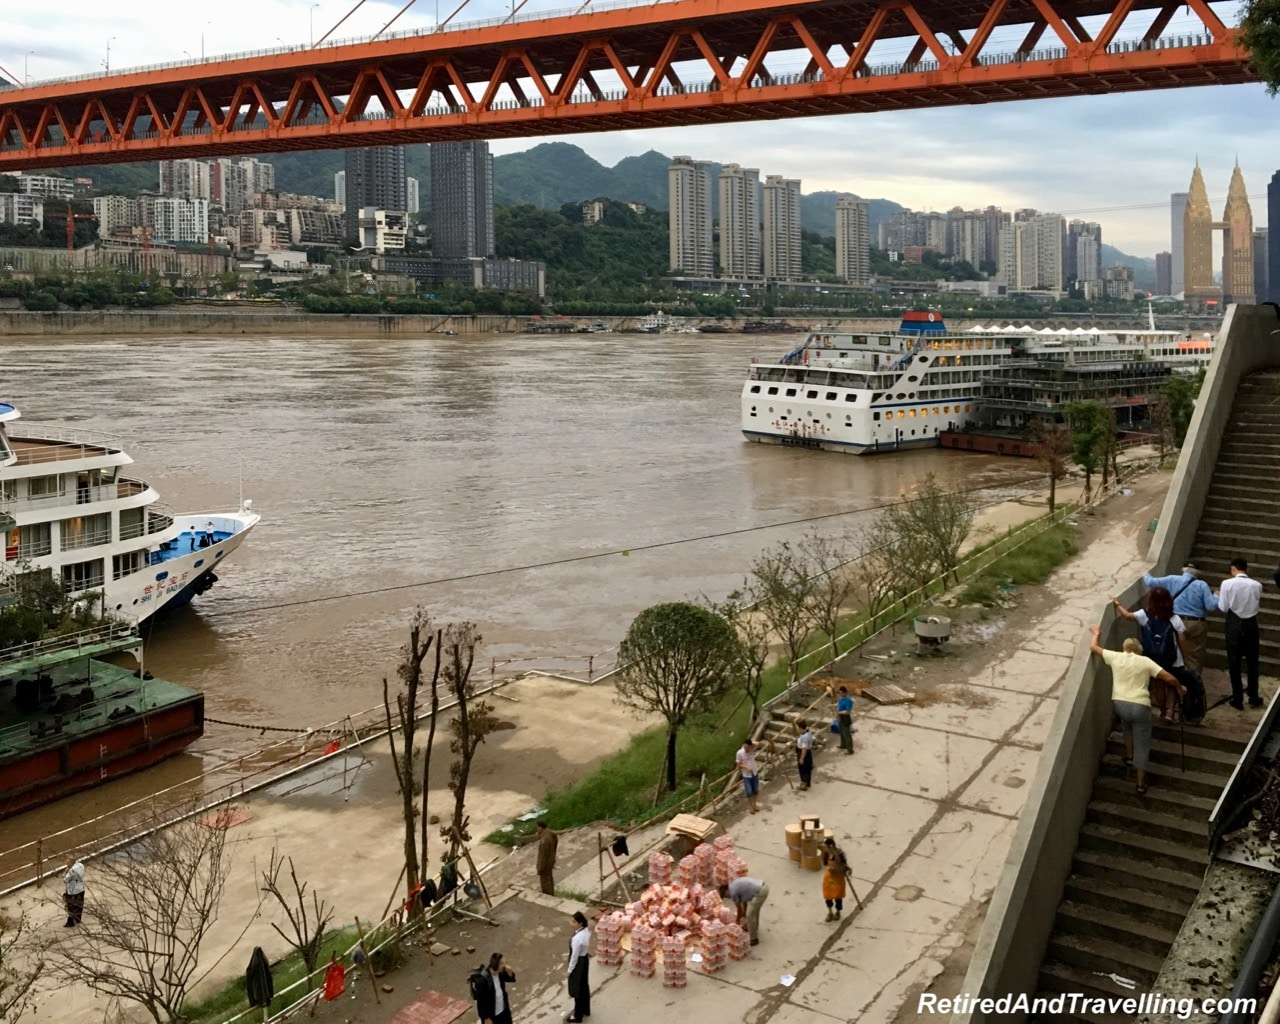 Viking Emerald Cruise Ship Chongqing - Cruise The Yangtze River In China With Viking Cruises.jpg